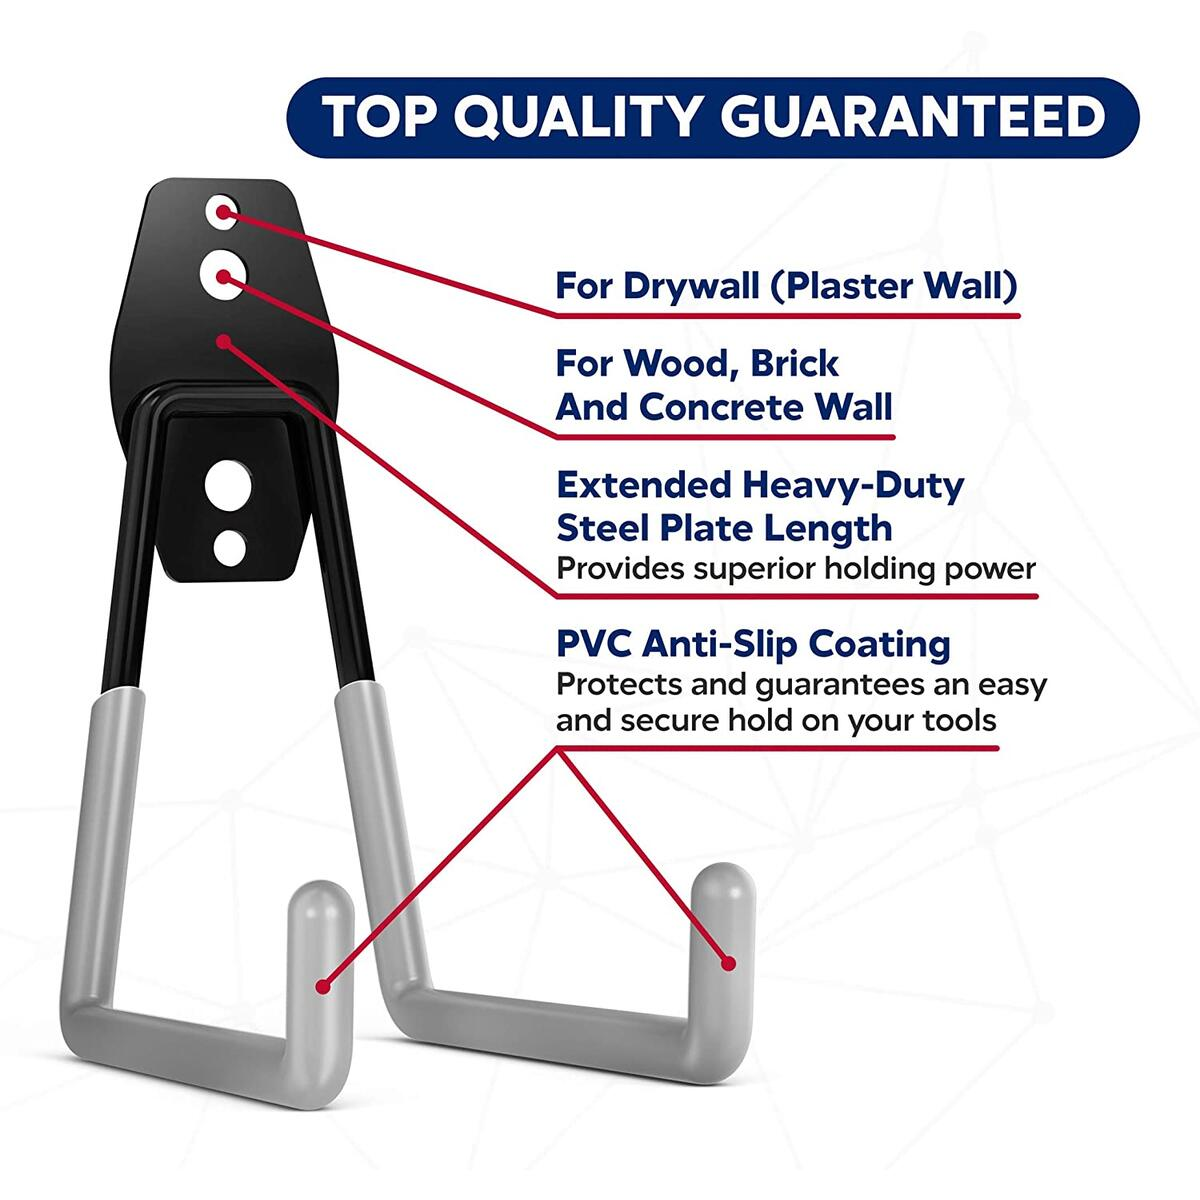 Garage Storage Hooks Heavy Duty 14 Pack – Wall Mount Garage Utility Hooks and Hangers Anti-Slip Coating Tool Hooks for Ladders, Bikes, Power Tools, Shovels and Strollers by AnMark